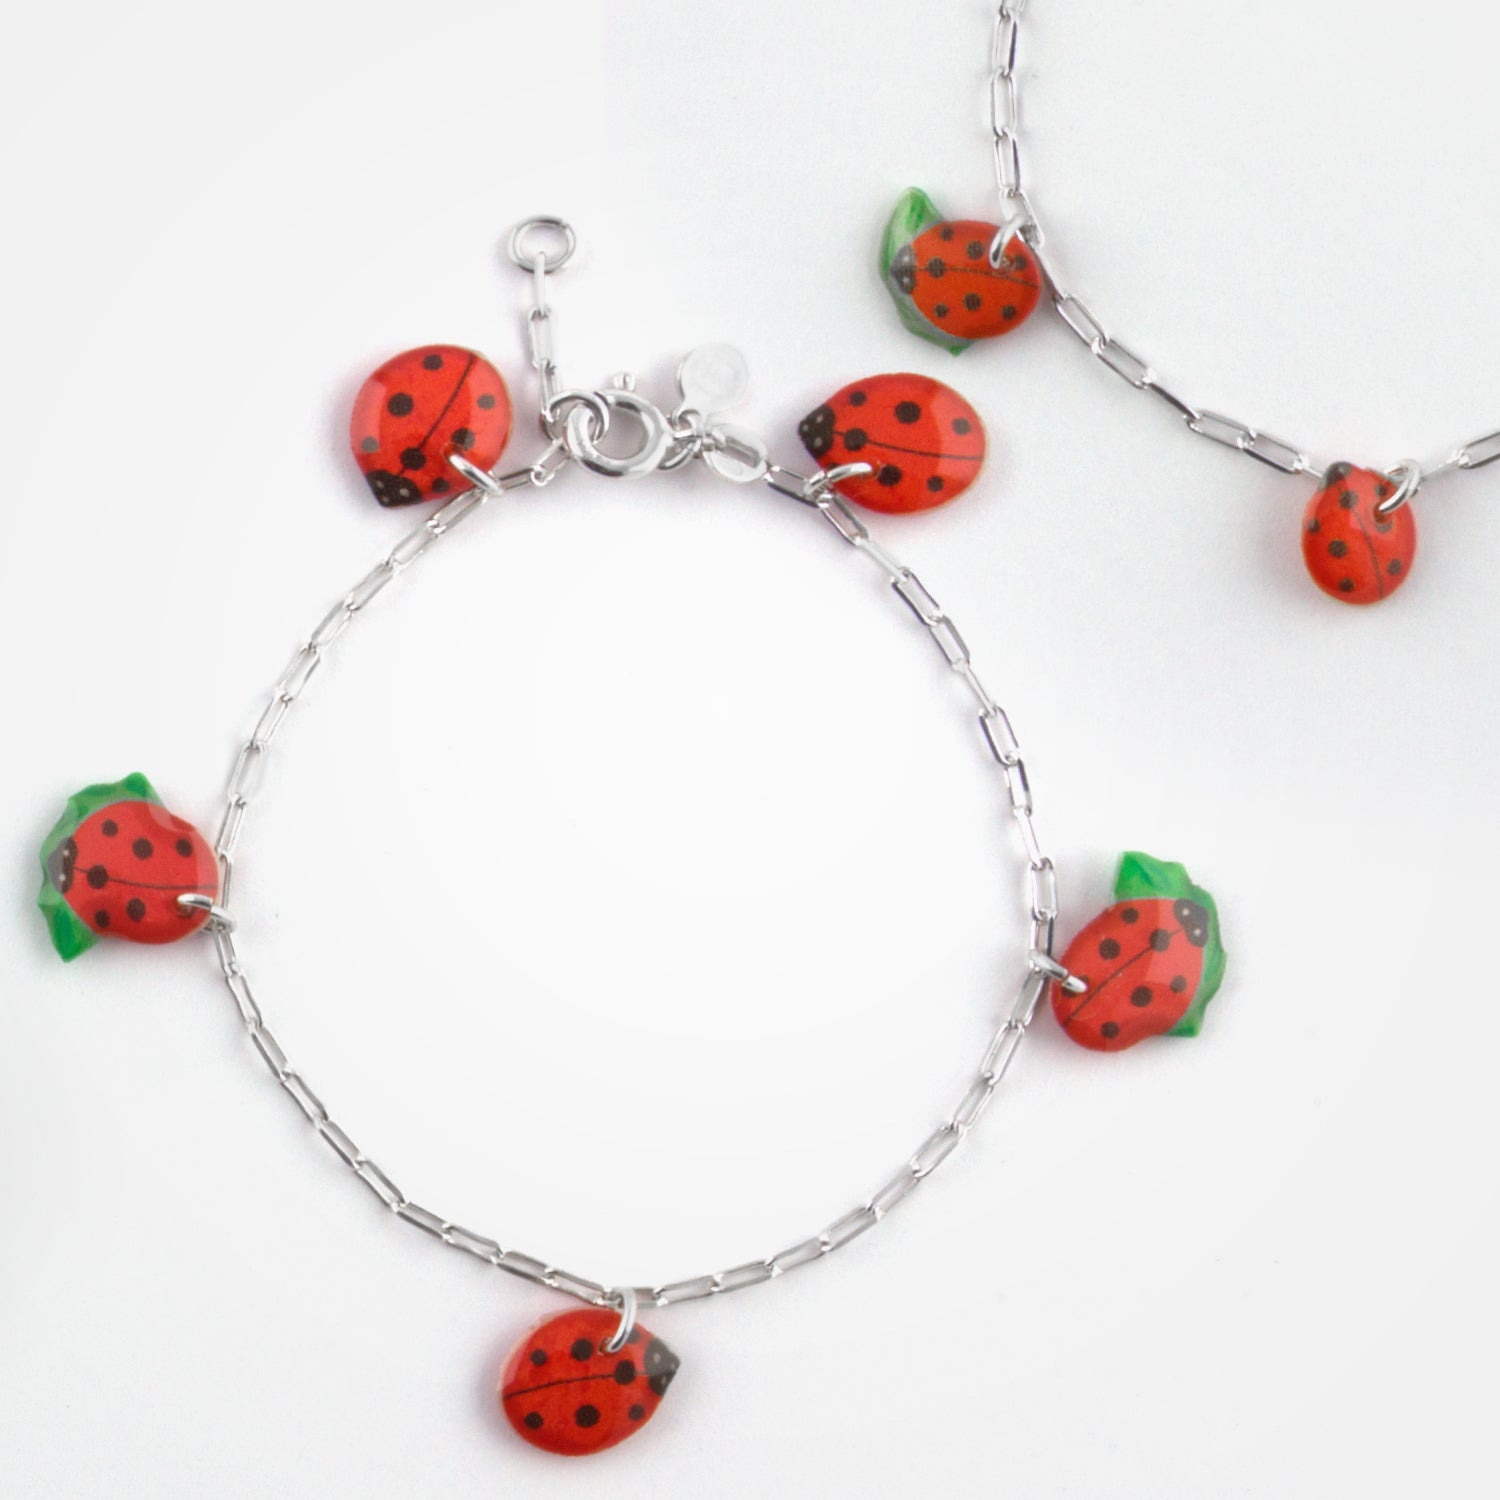 Lady Bug Set by Ribambelle - Set of 2 Bracelets